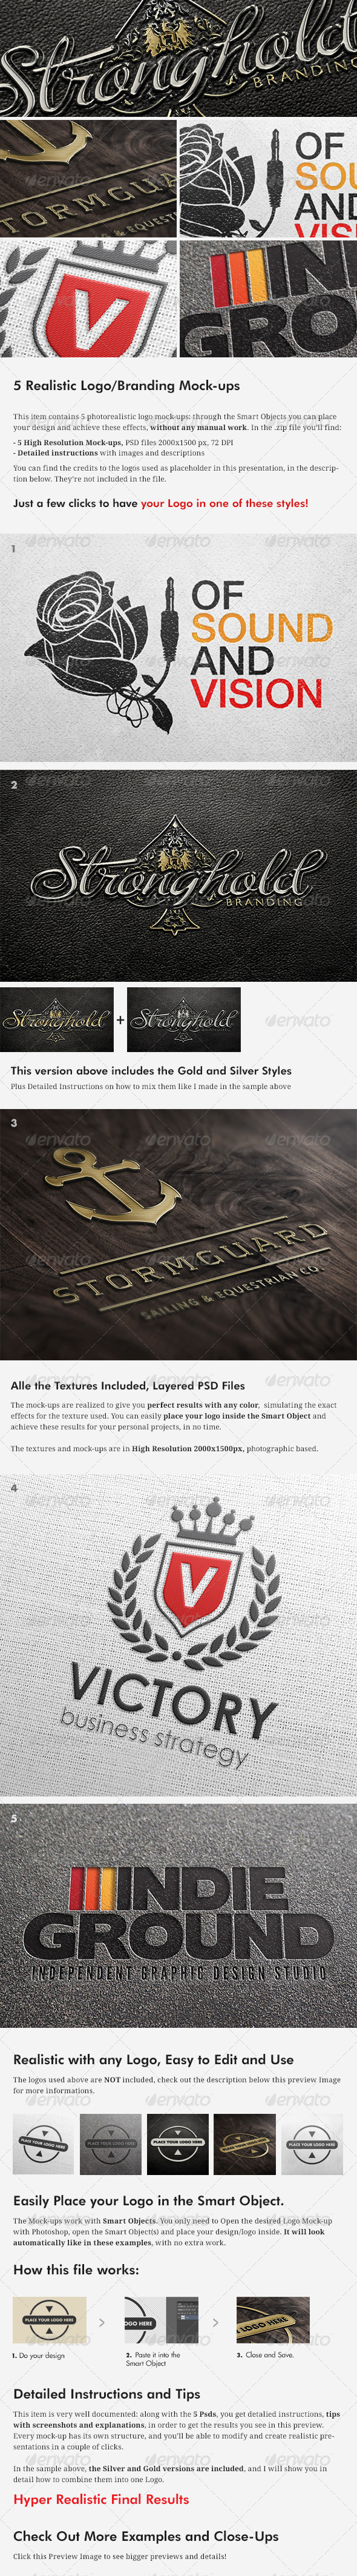 GraphicRiver 5 Realistic Logo Branding Mock-ups Layered PSD s 3946046